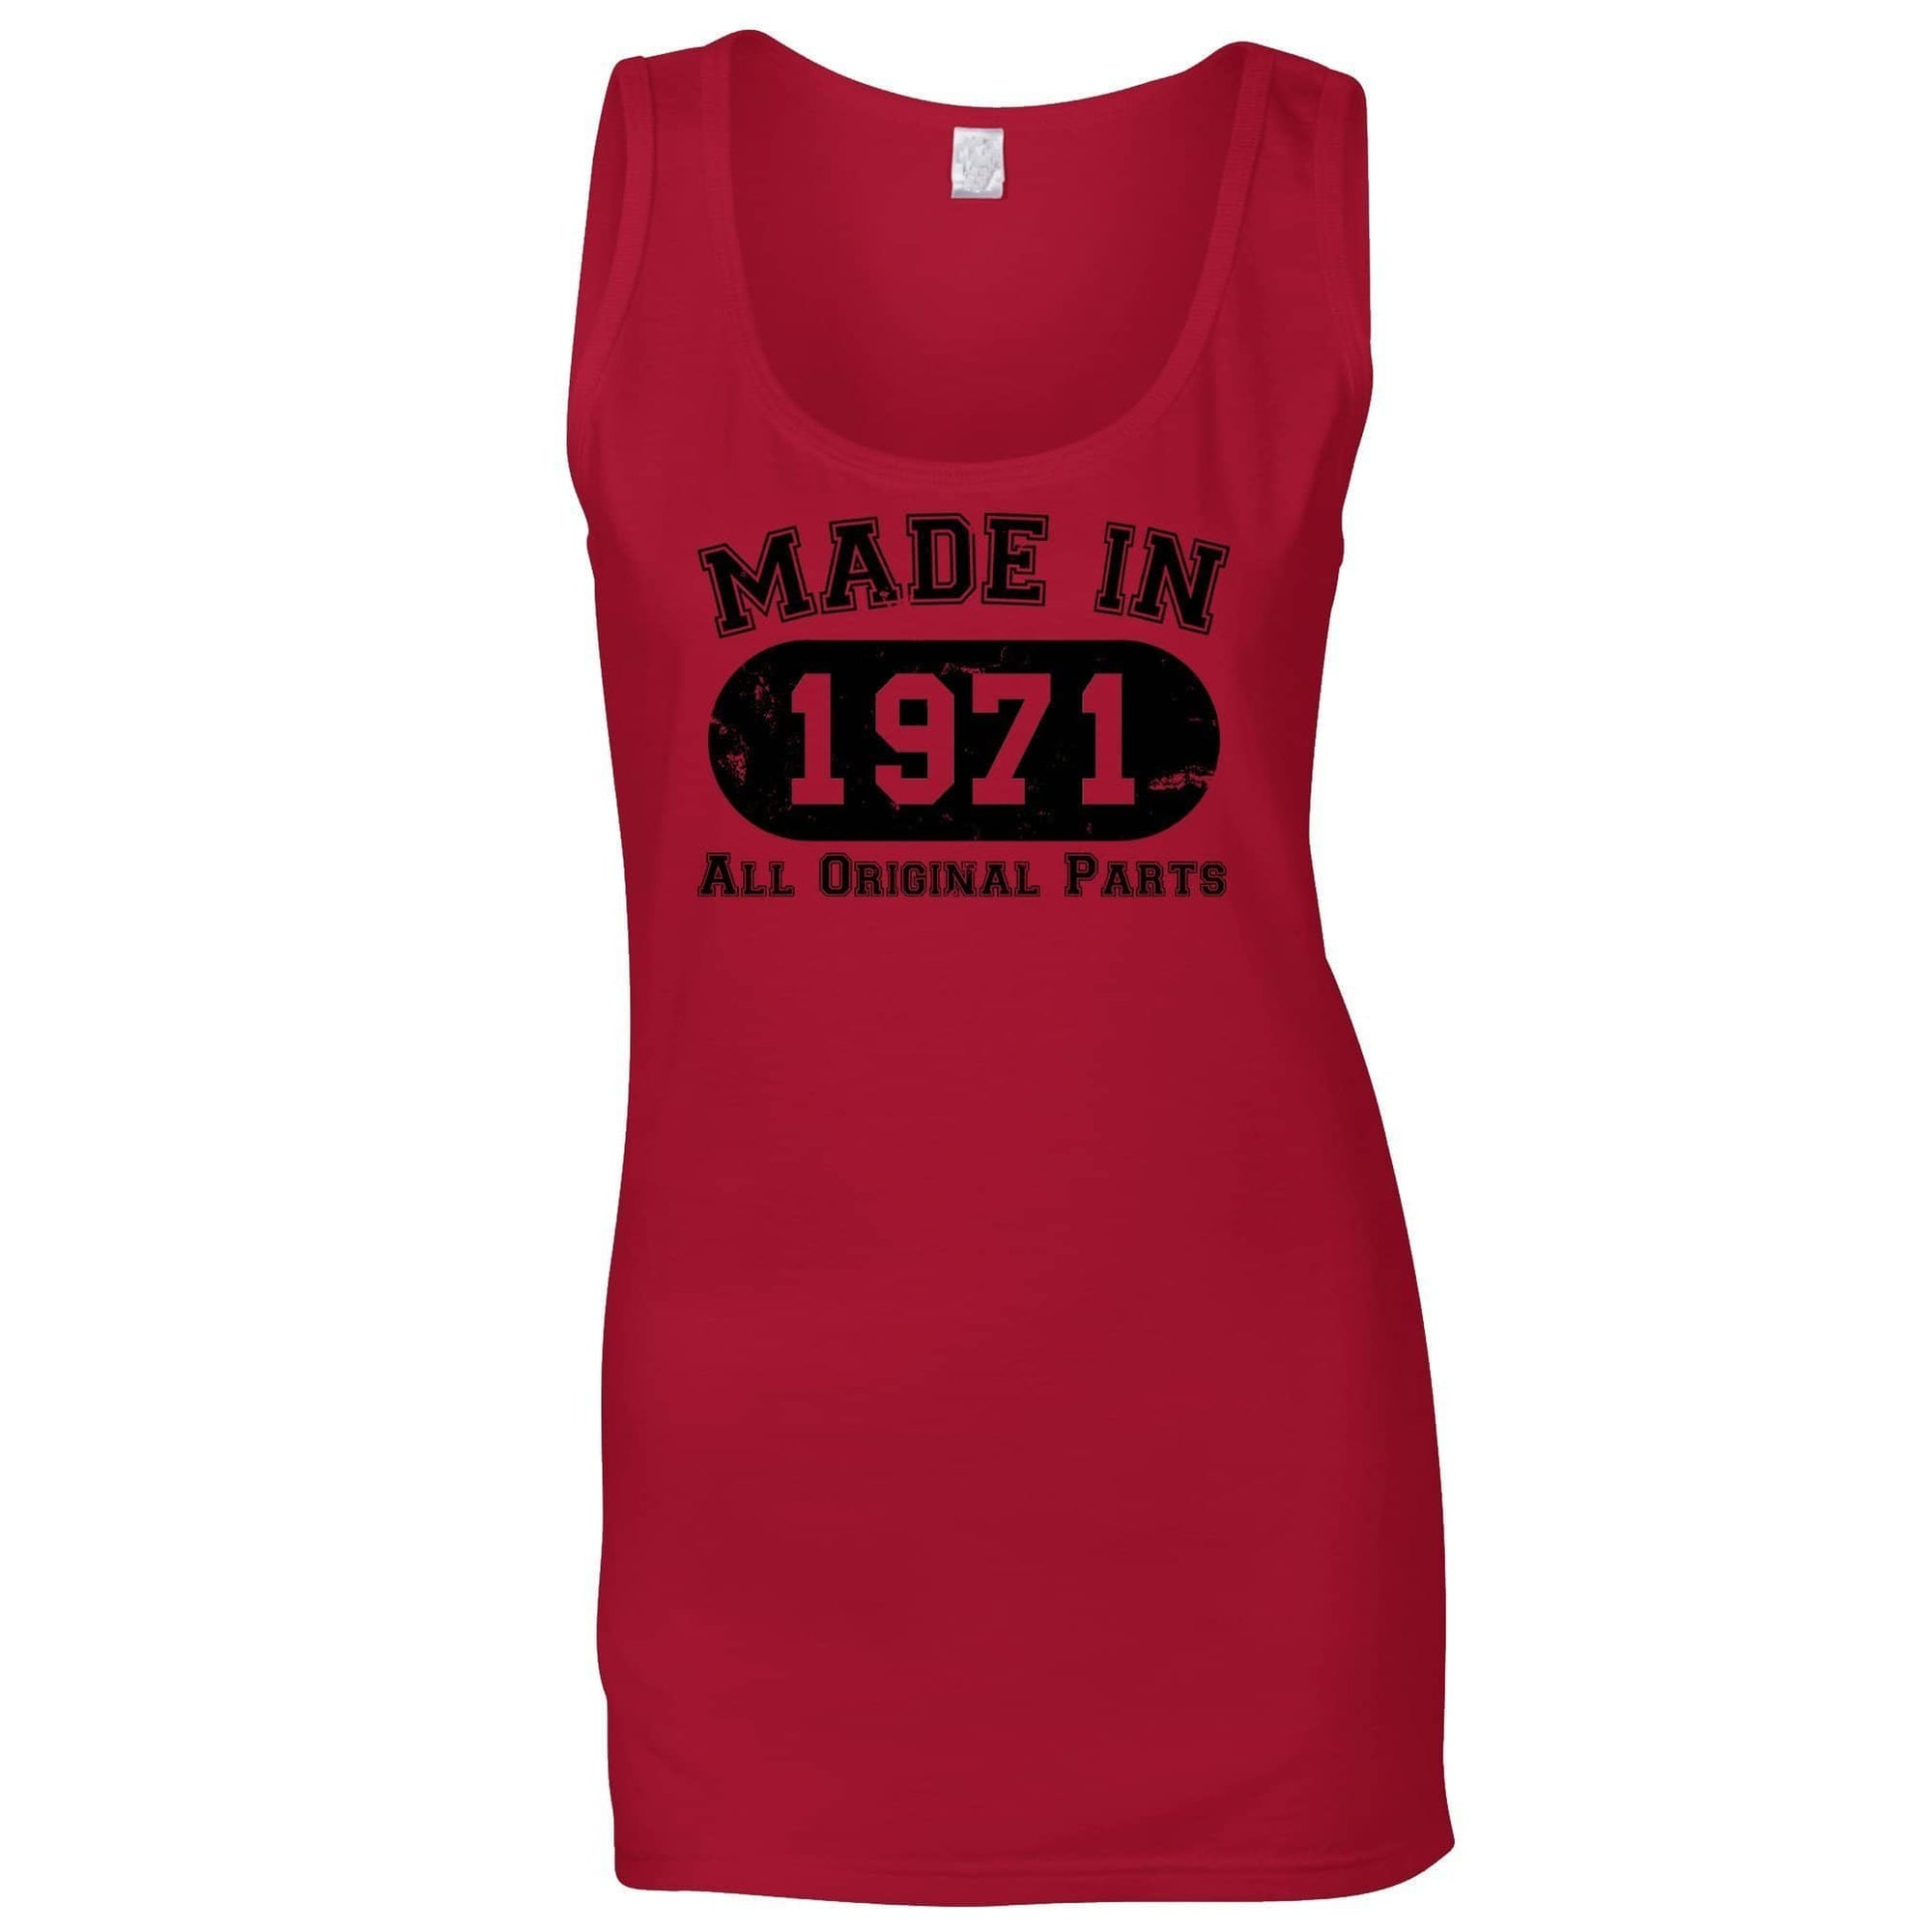 Made in 1971 All Original Parts Womens Vest [Distressed]